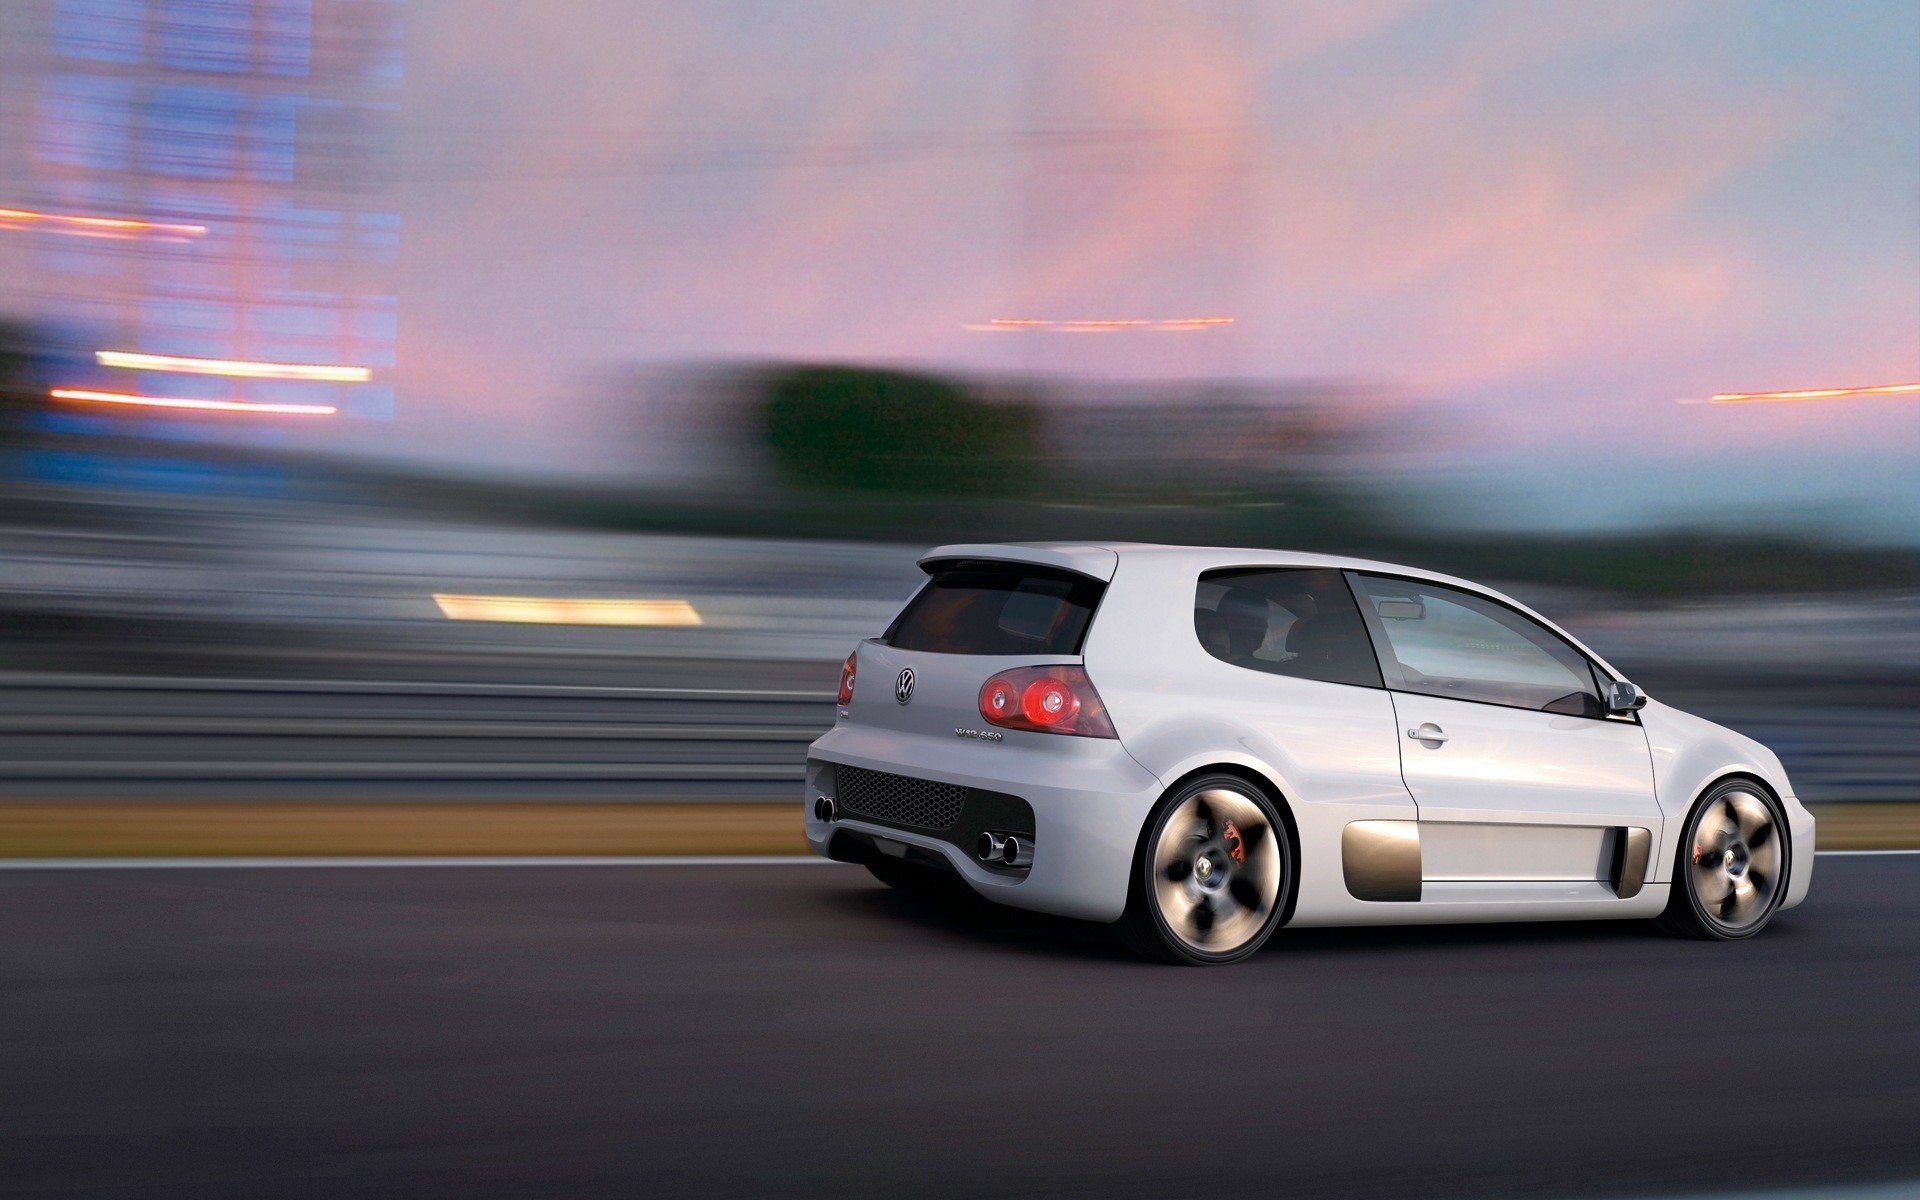 VW Wallpaper Screensavers